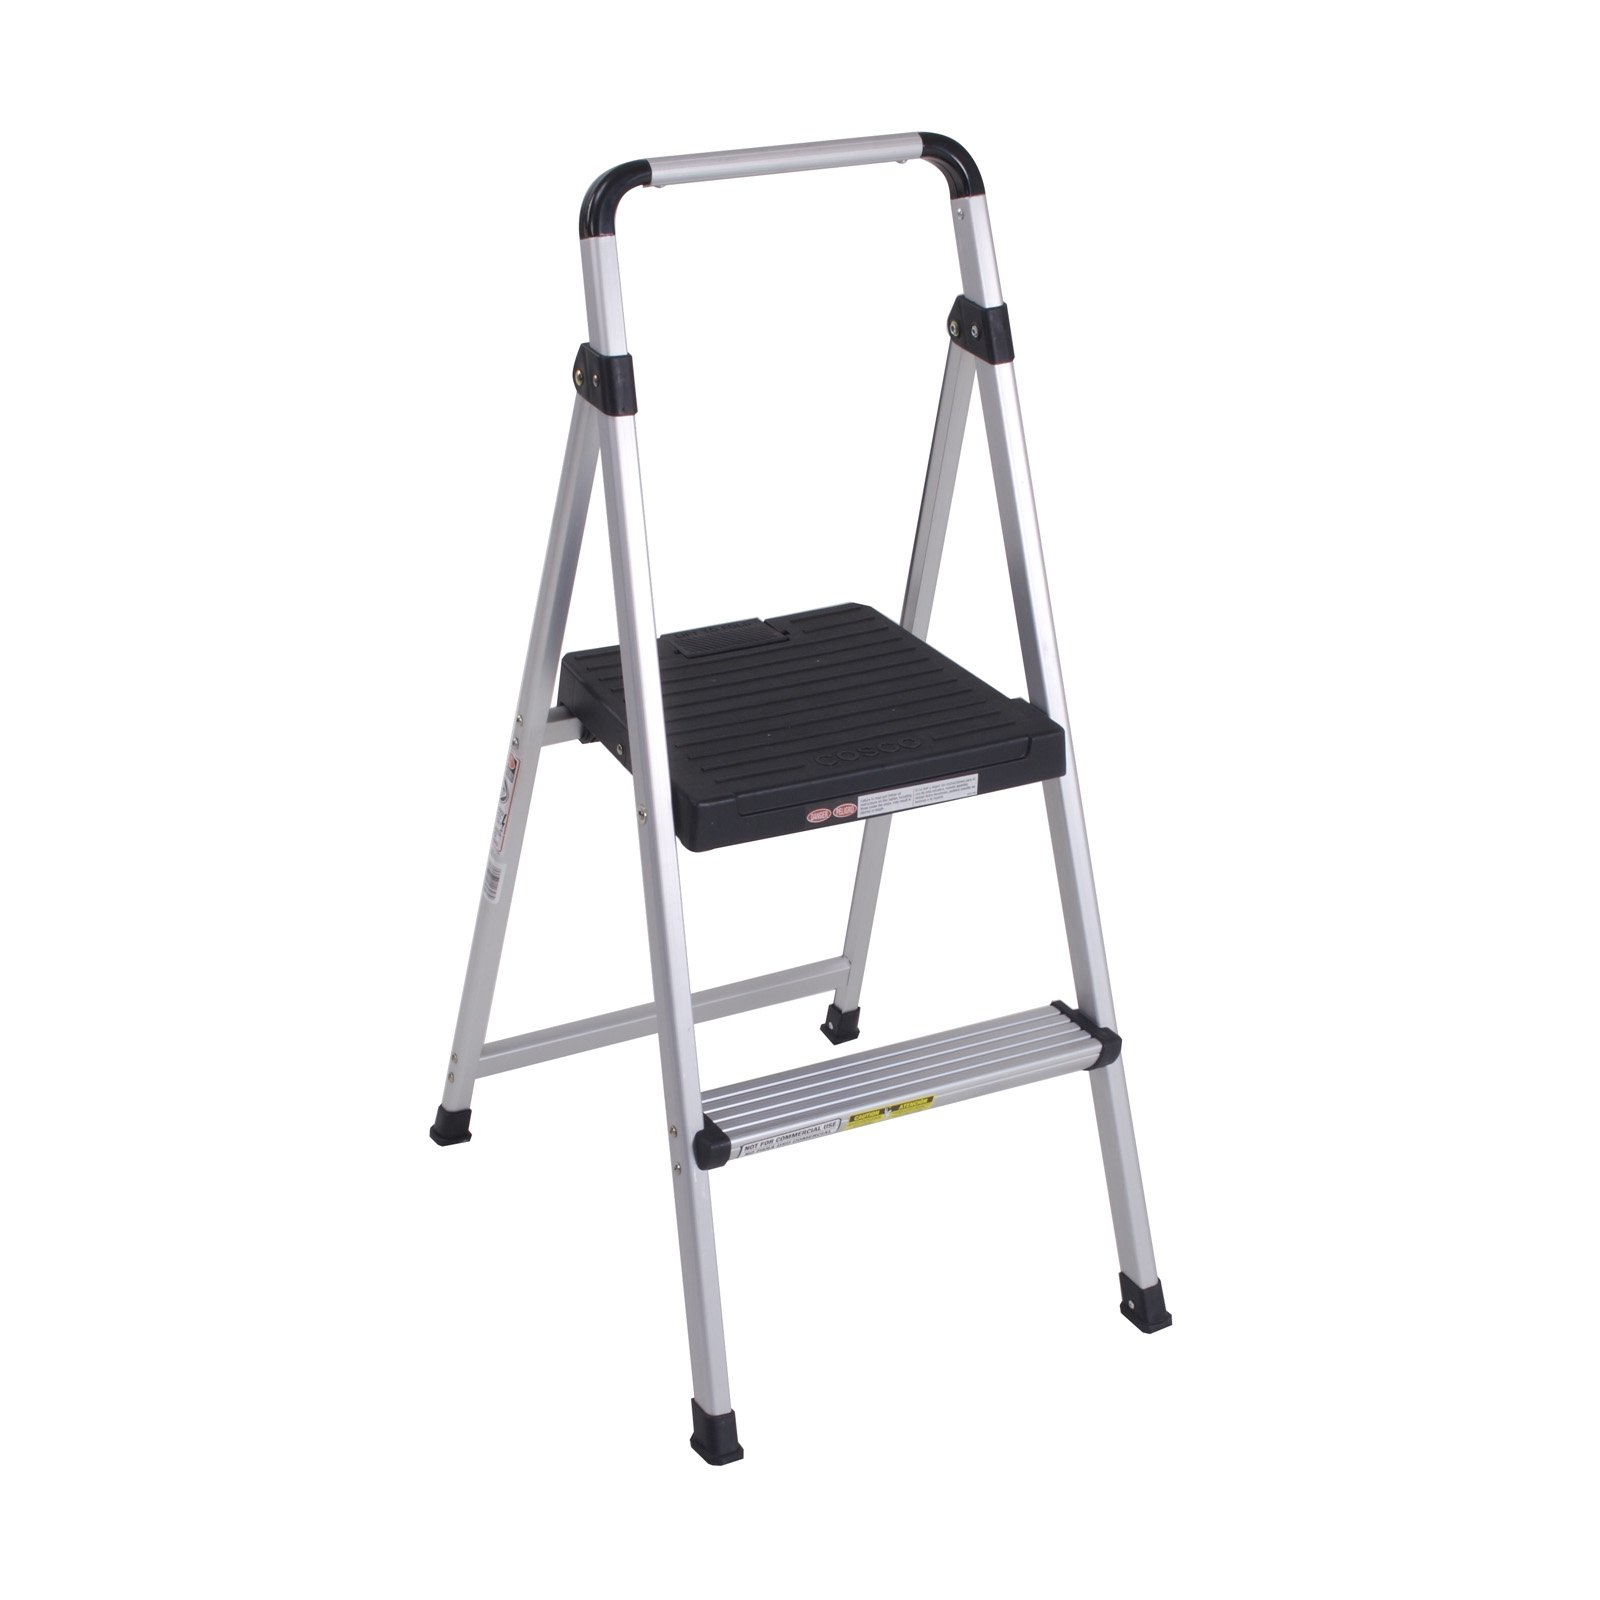 Cosco 2 Step Lite Solutions Folding Step Stool by Cosco